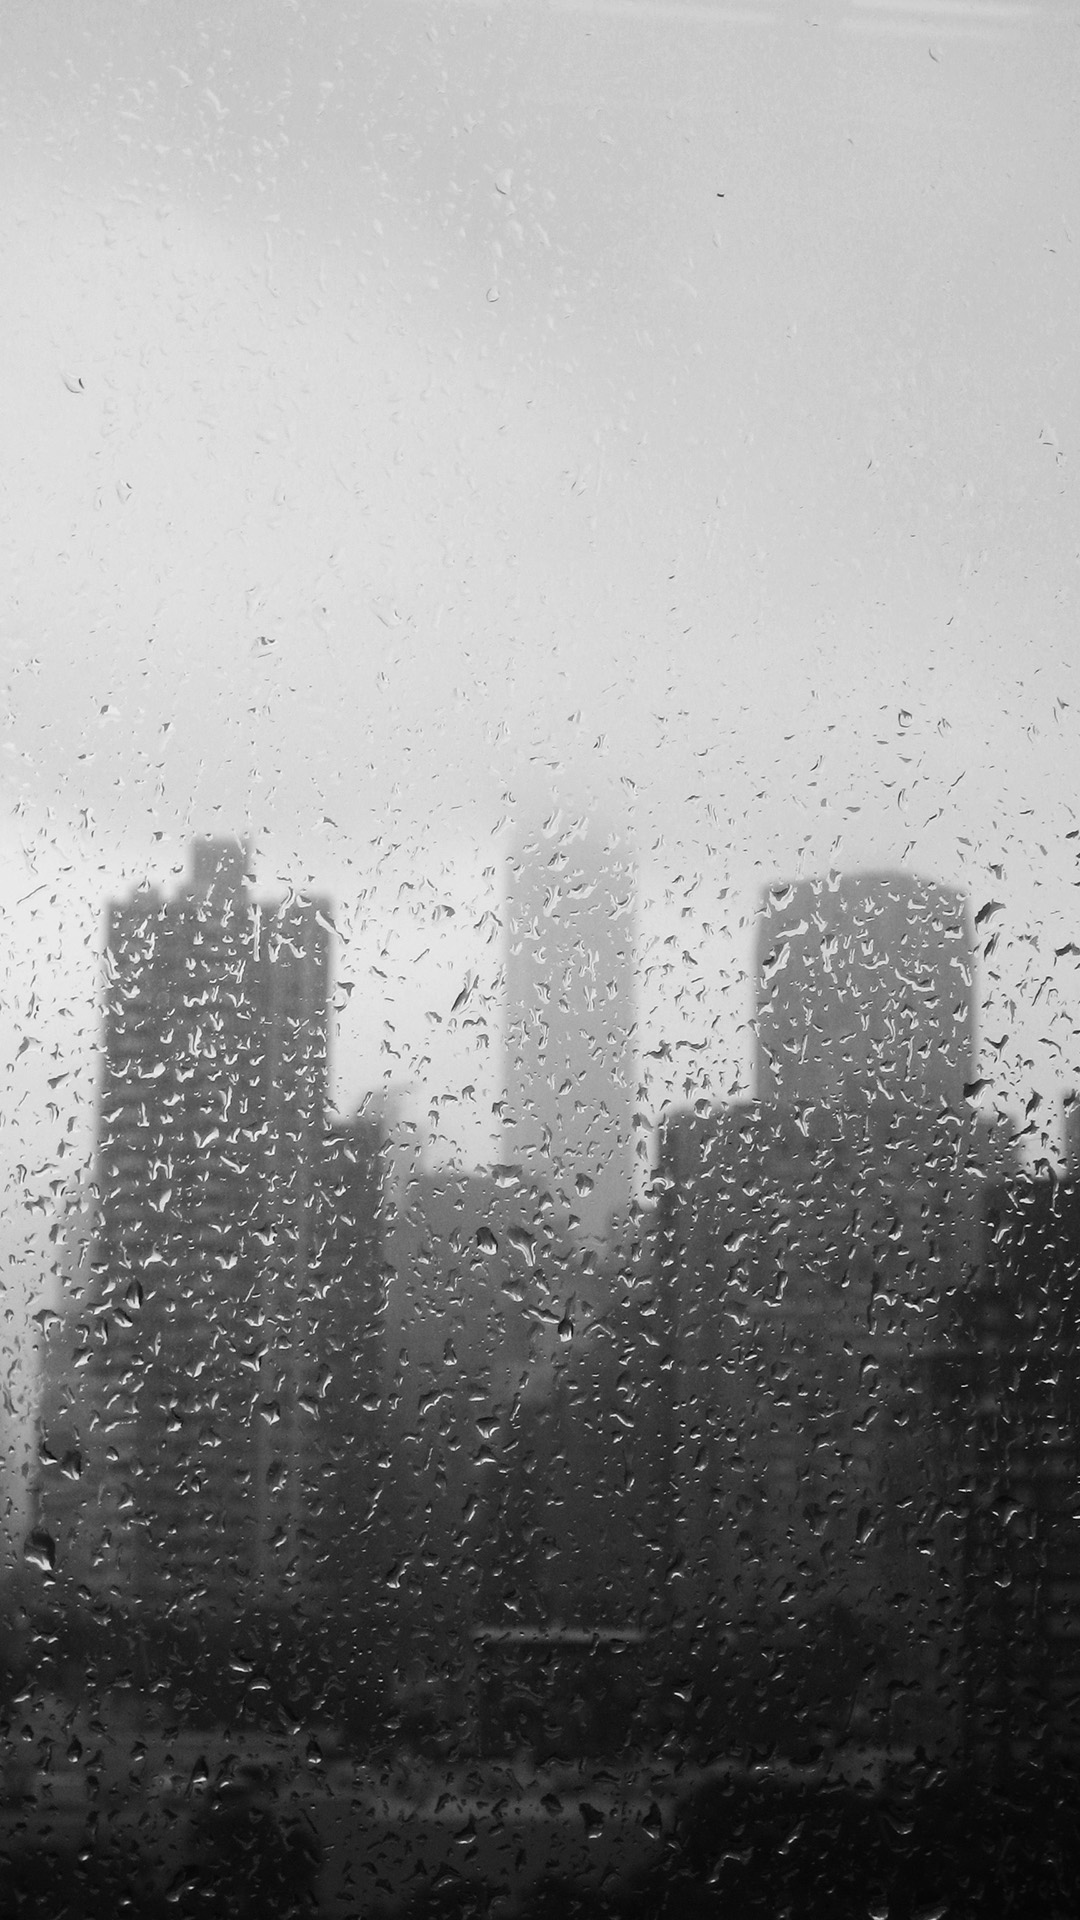 Rainning htc one wallpaper